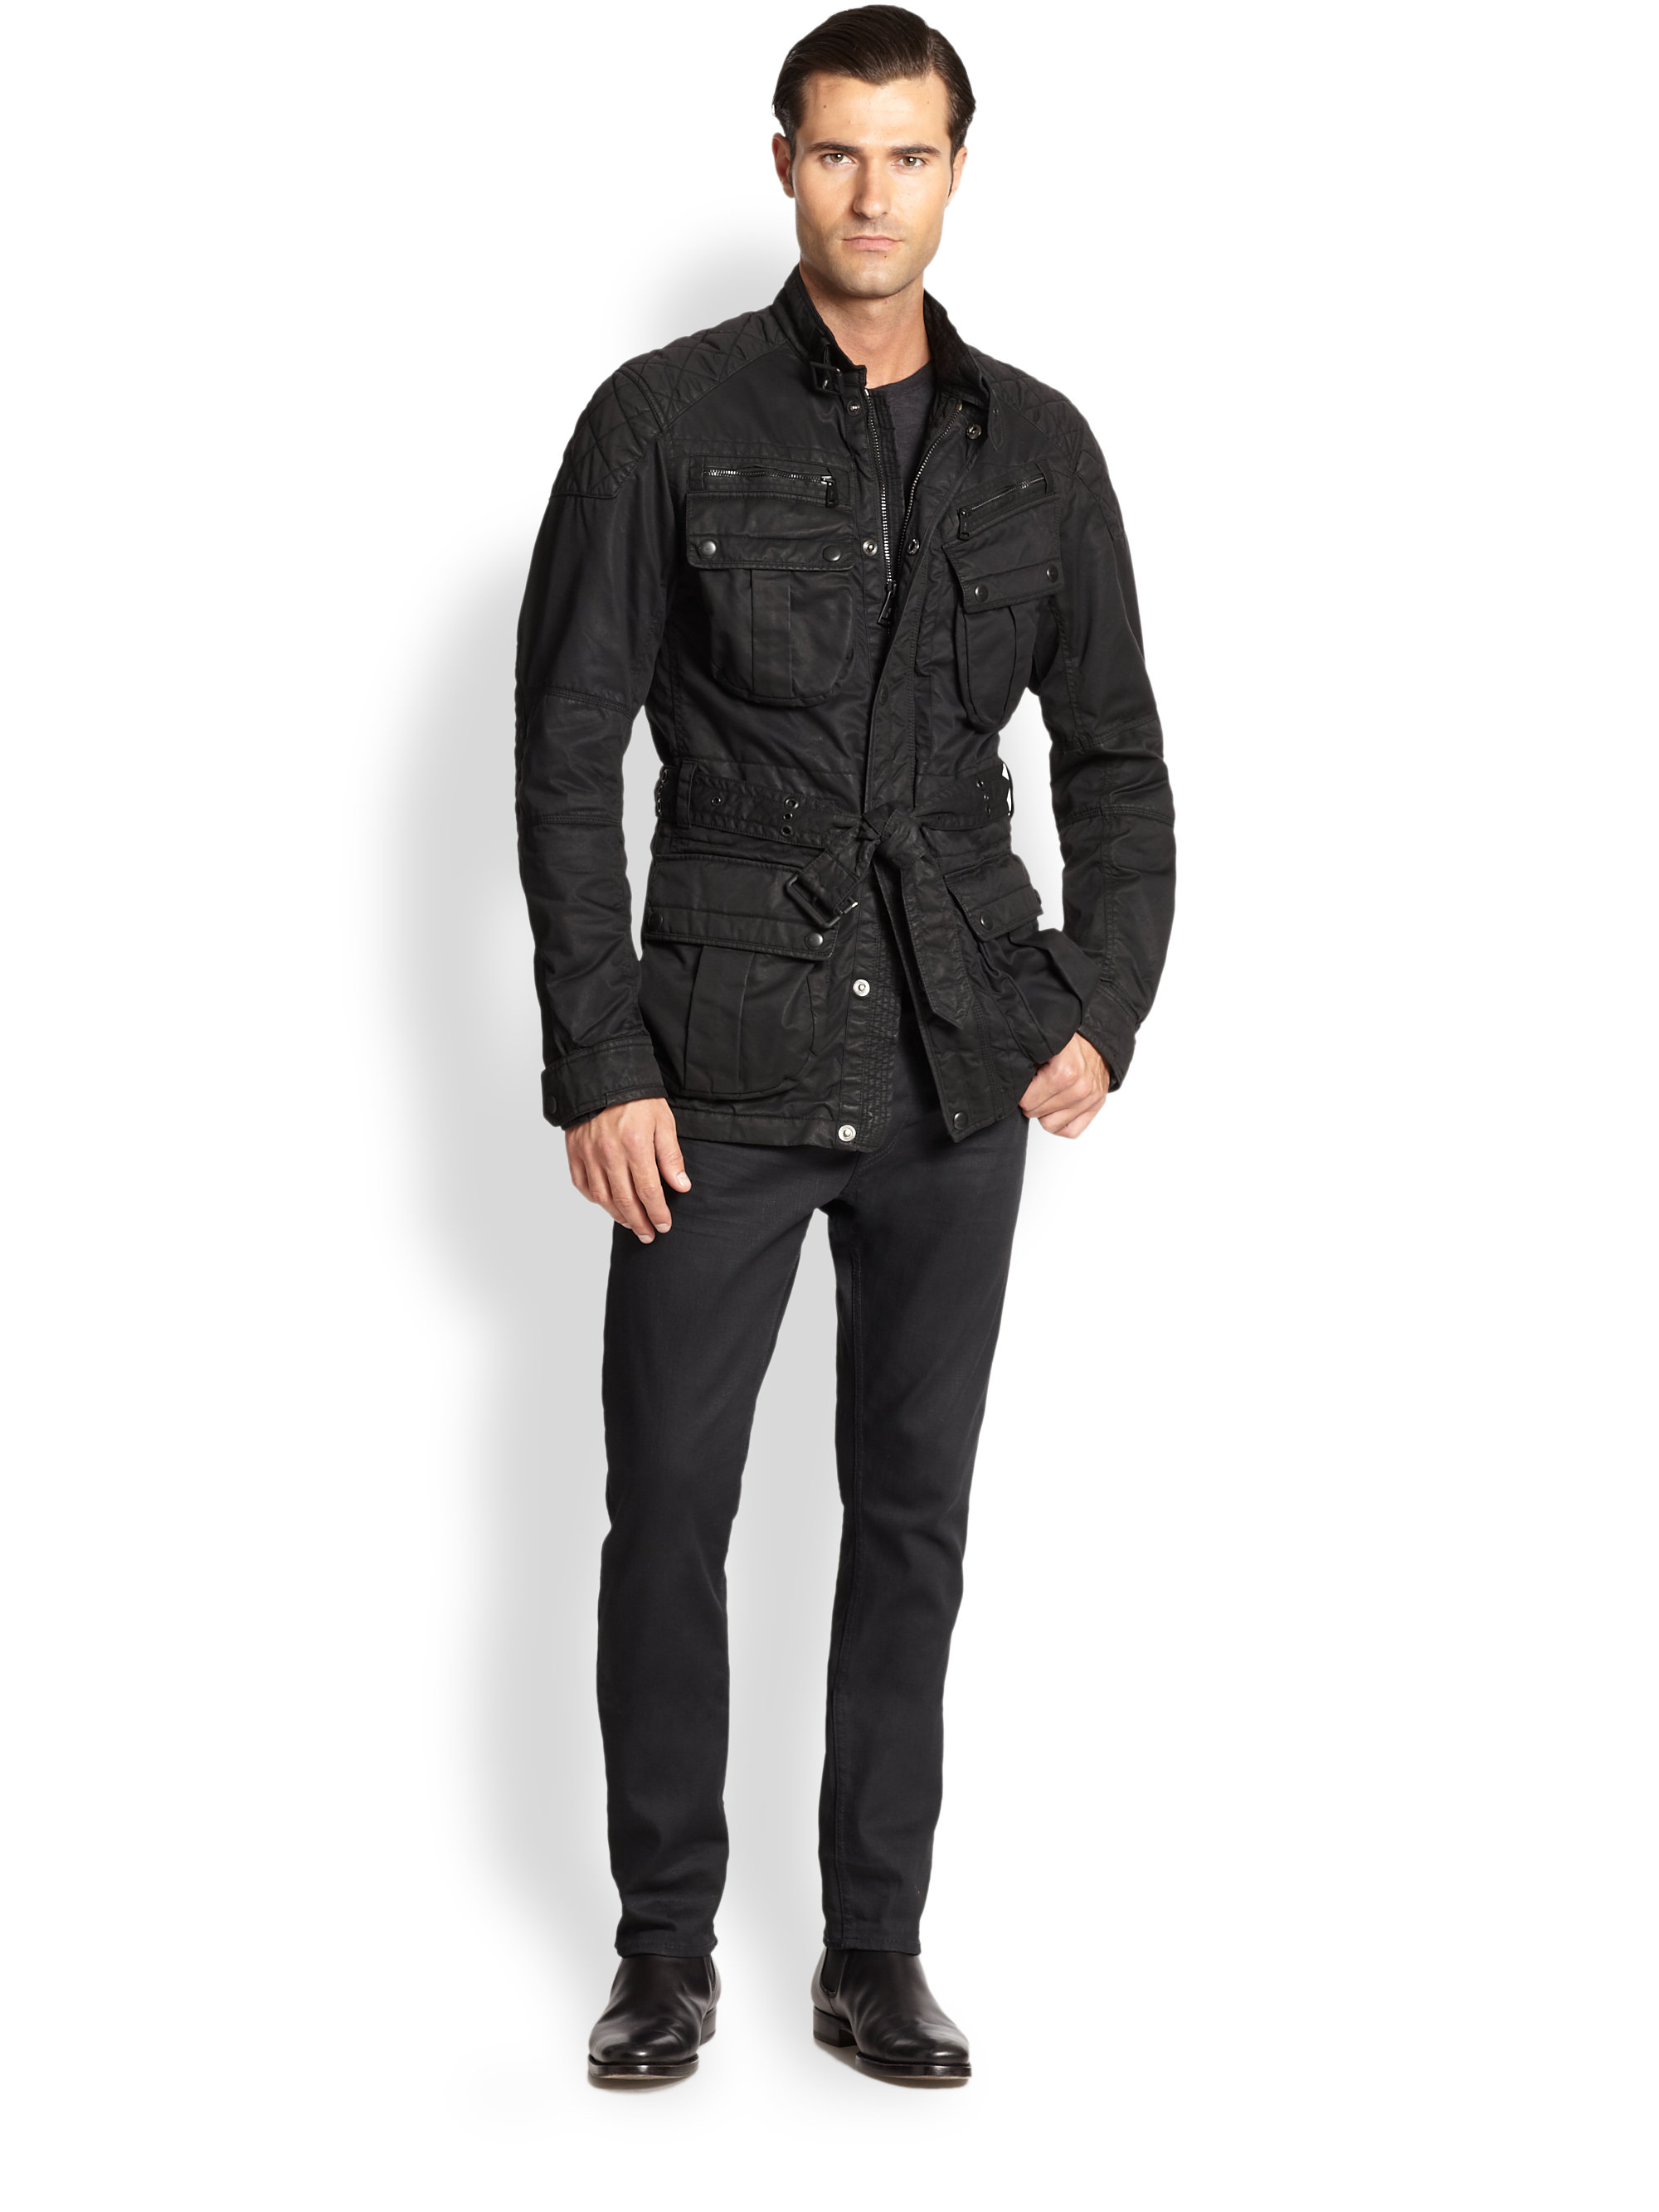 Lyst Ralph Lauren Black Label Suspension 4 Pocket Jacket In Black For Men